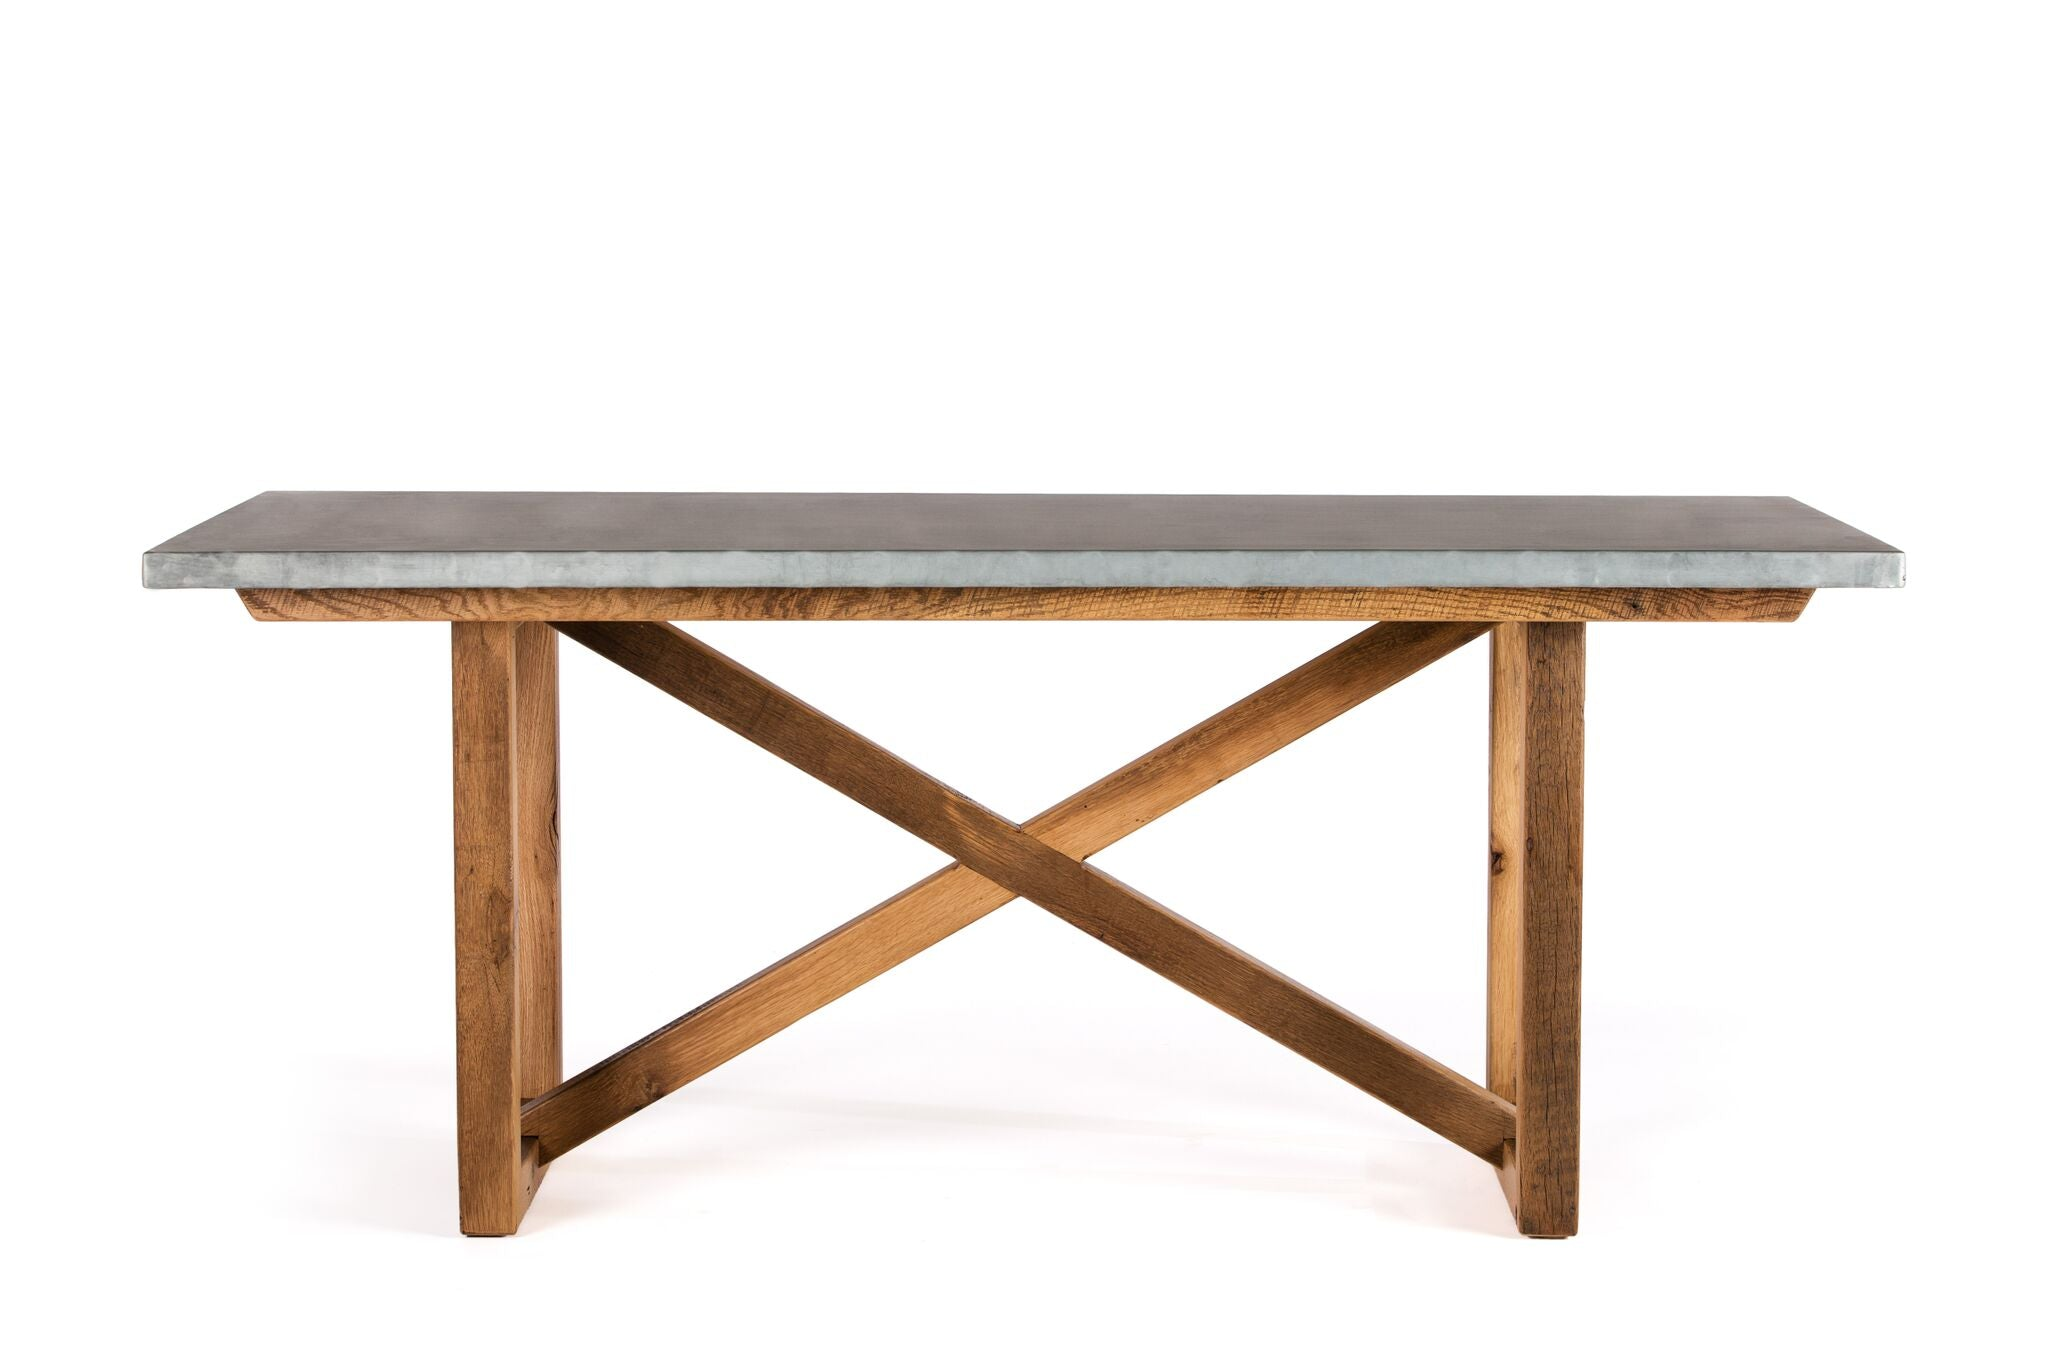 "Zinc Rectangular Table | Astor Table | CLASSIC | White Wash on Reclaimed Oak | CUSTOM SIZE 60""L 30""W 42""H 